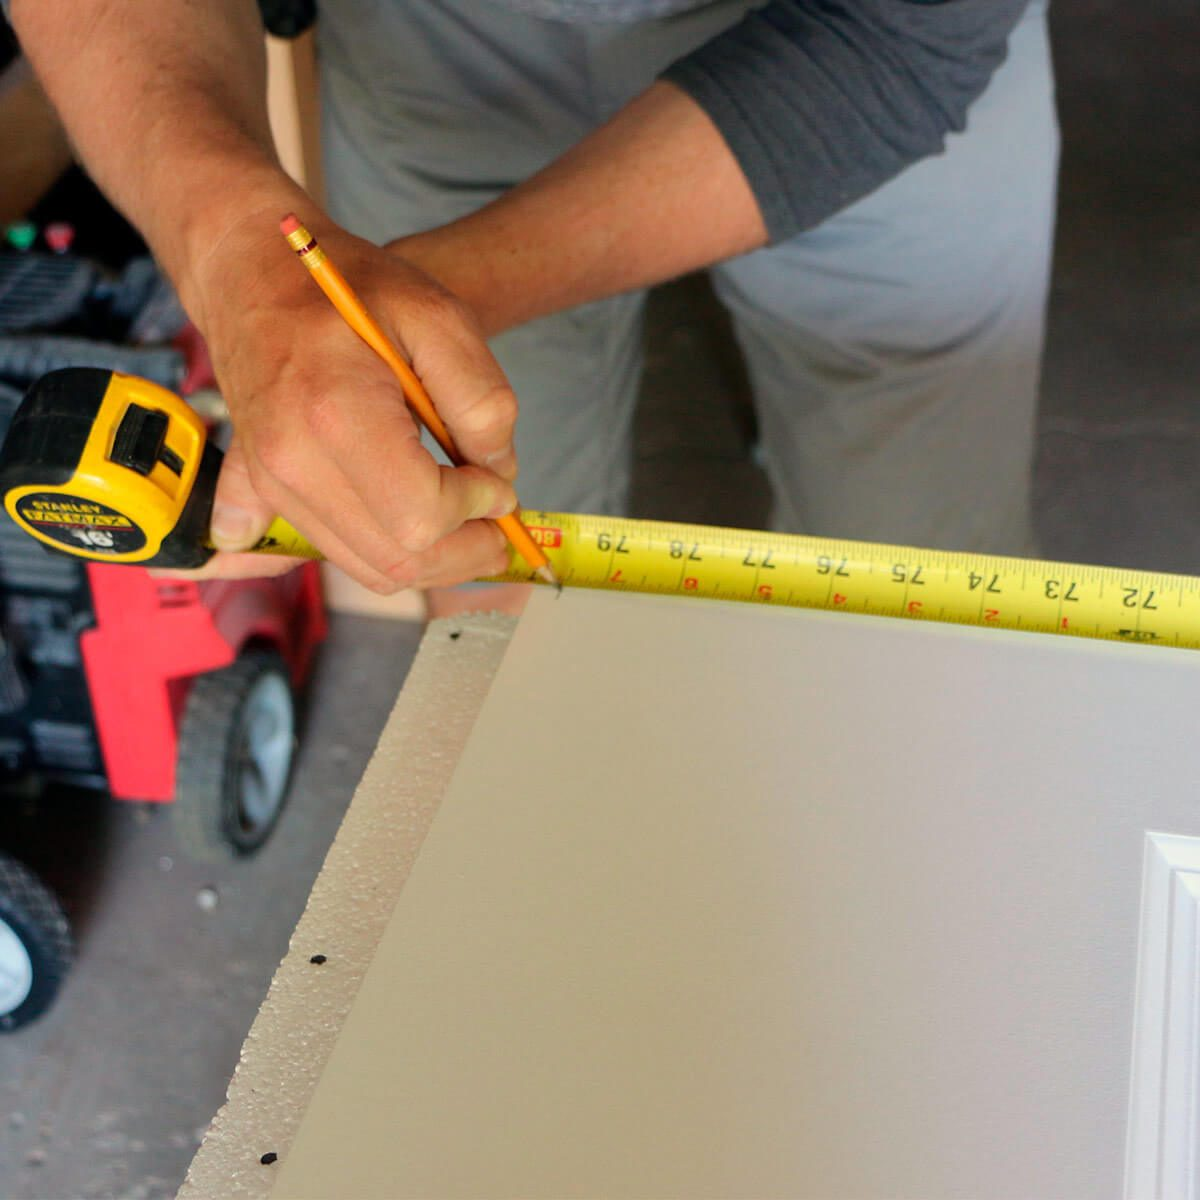 door measurements tape measure